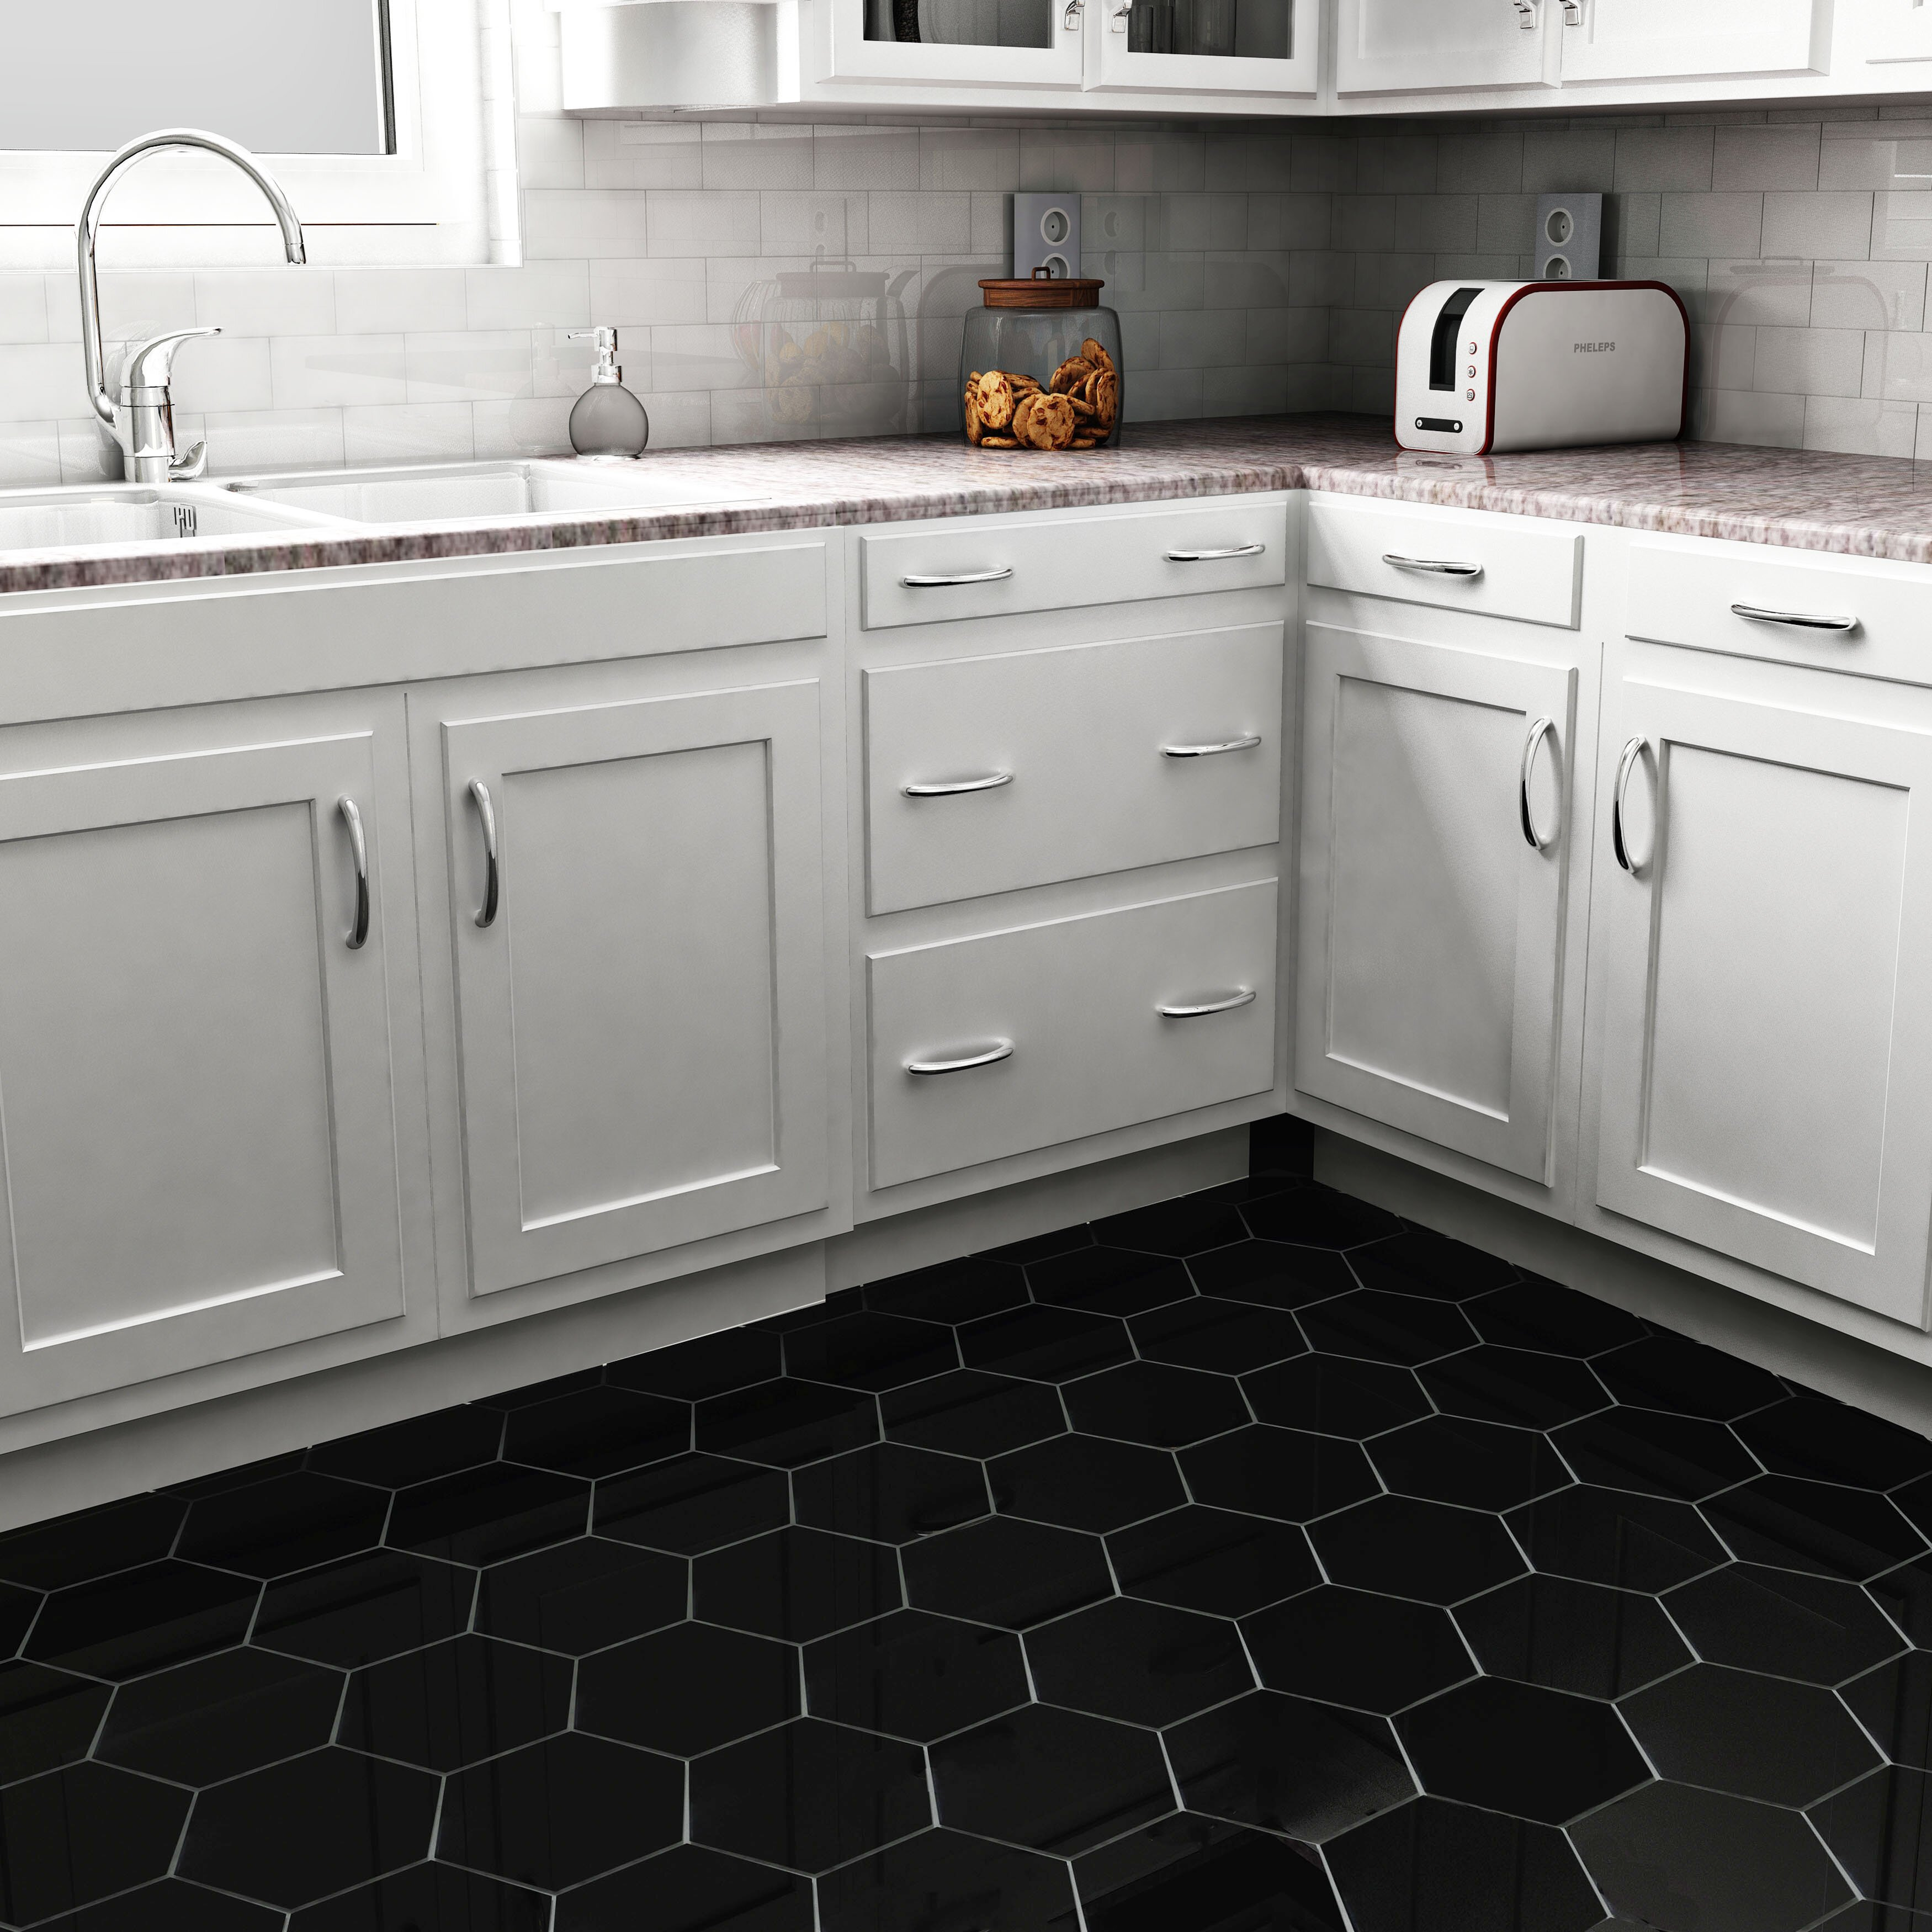 Elitetile Hexitile 7 Quot X 8 Quot Porcelain Field Tile In Matte